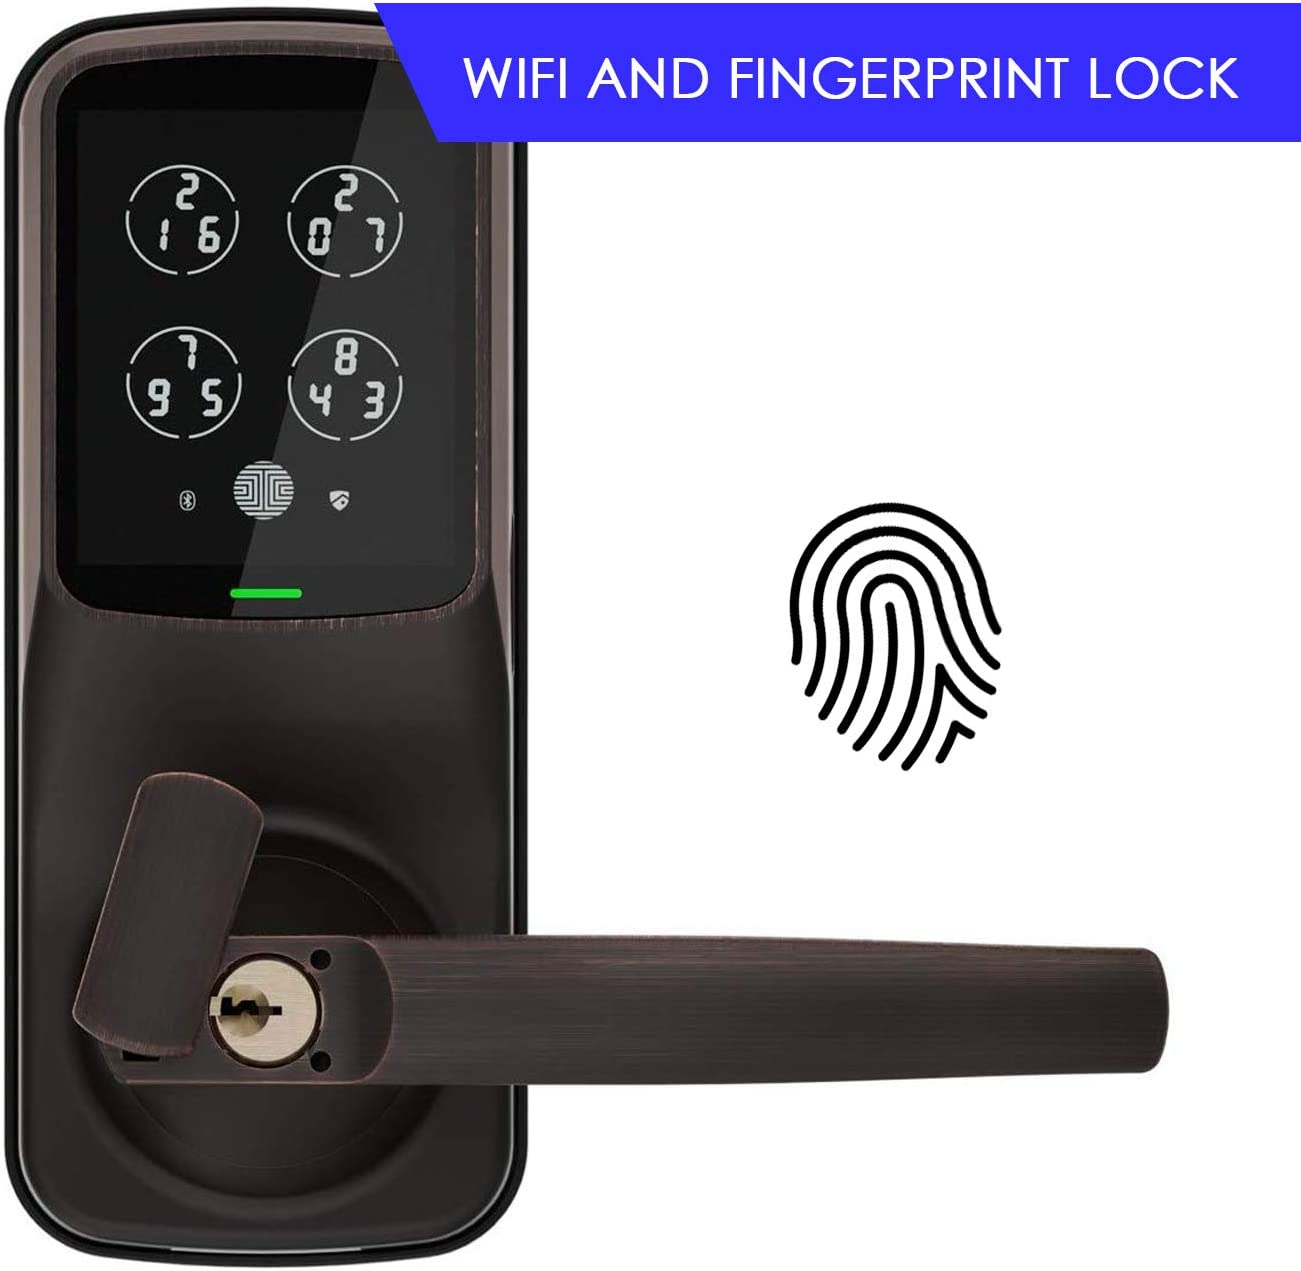 iOS Android Compatible Secure Keypad Bluetooth Fingerprint WiFi Keyless Entry Smart Door Lock 3D Fingerprint Reader Latch, Satin Nickel PGD628W Lockly Secure Pro Latch Edition